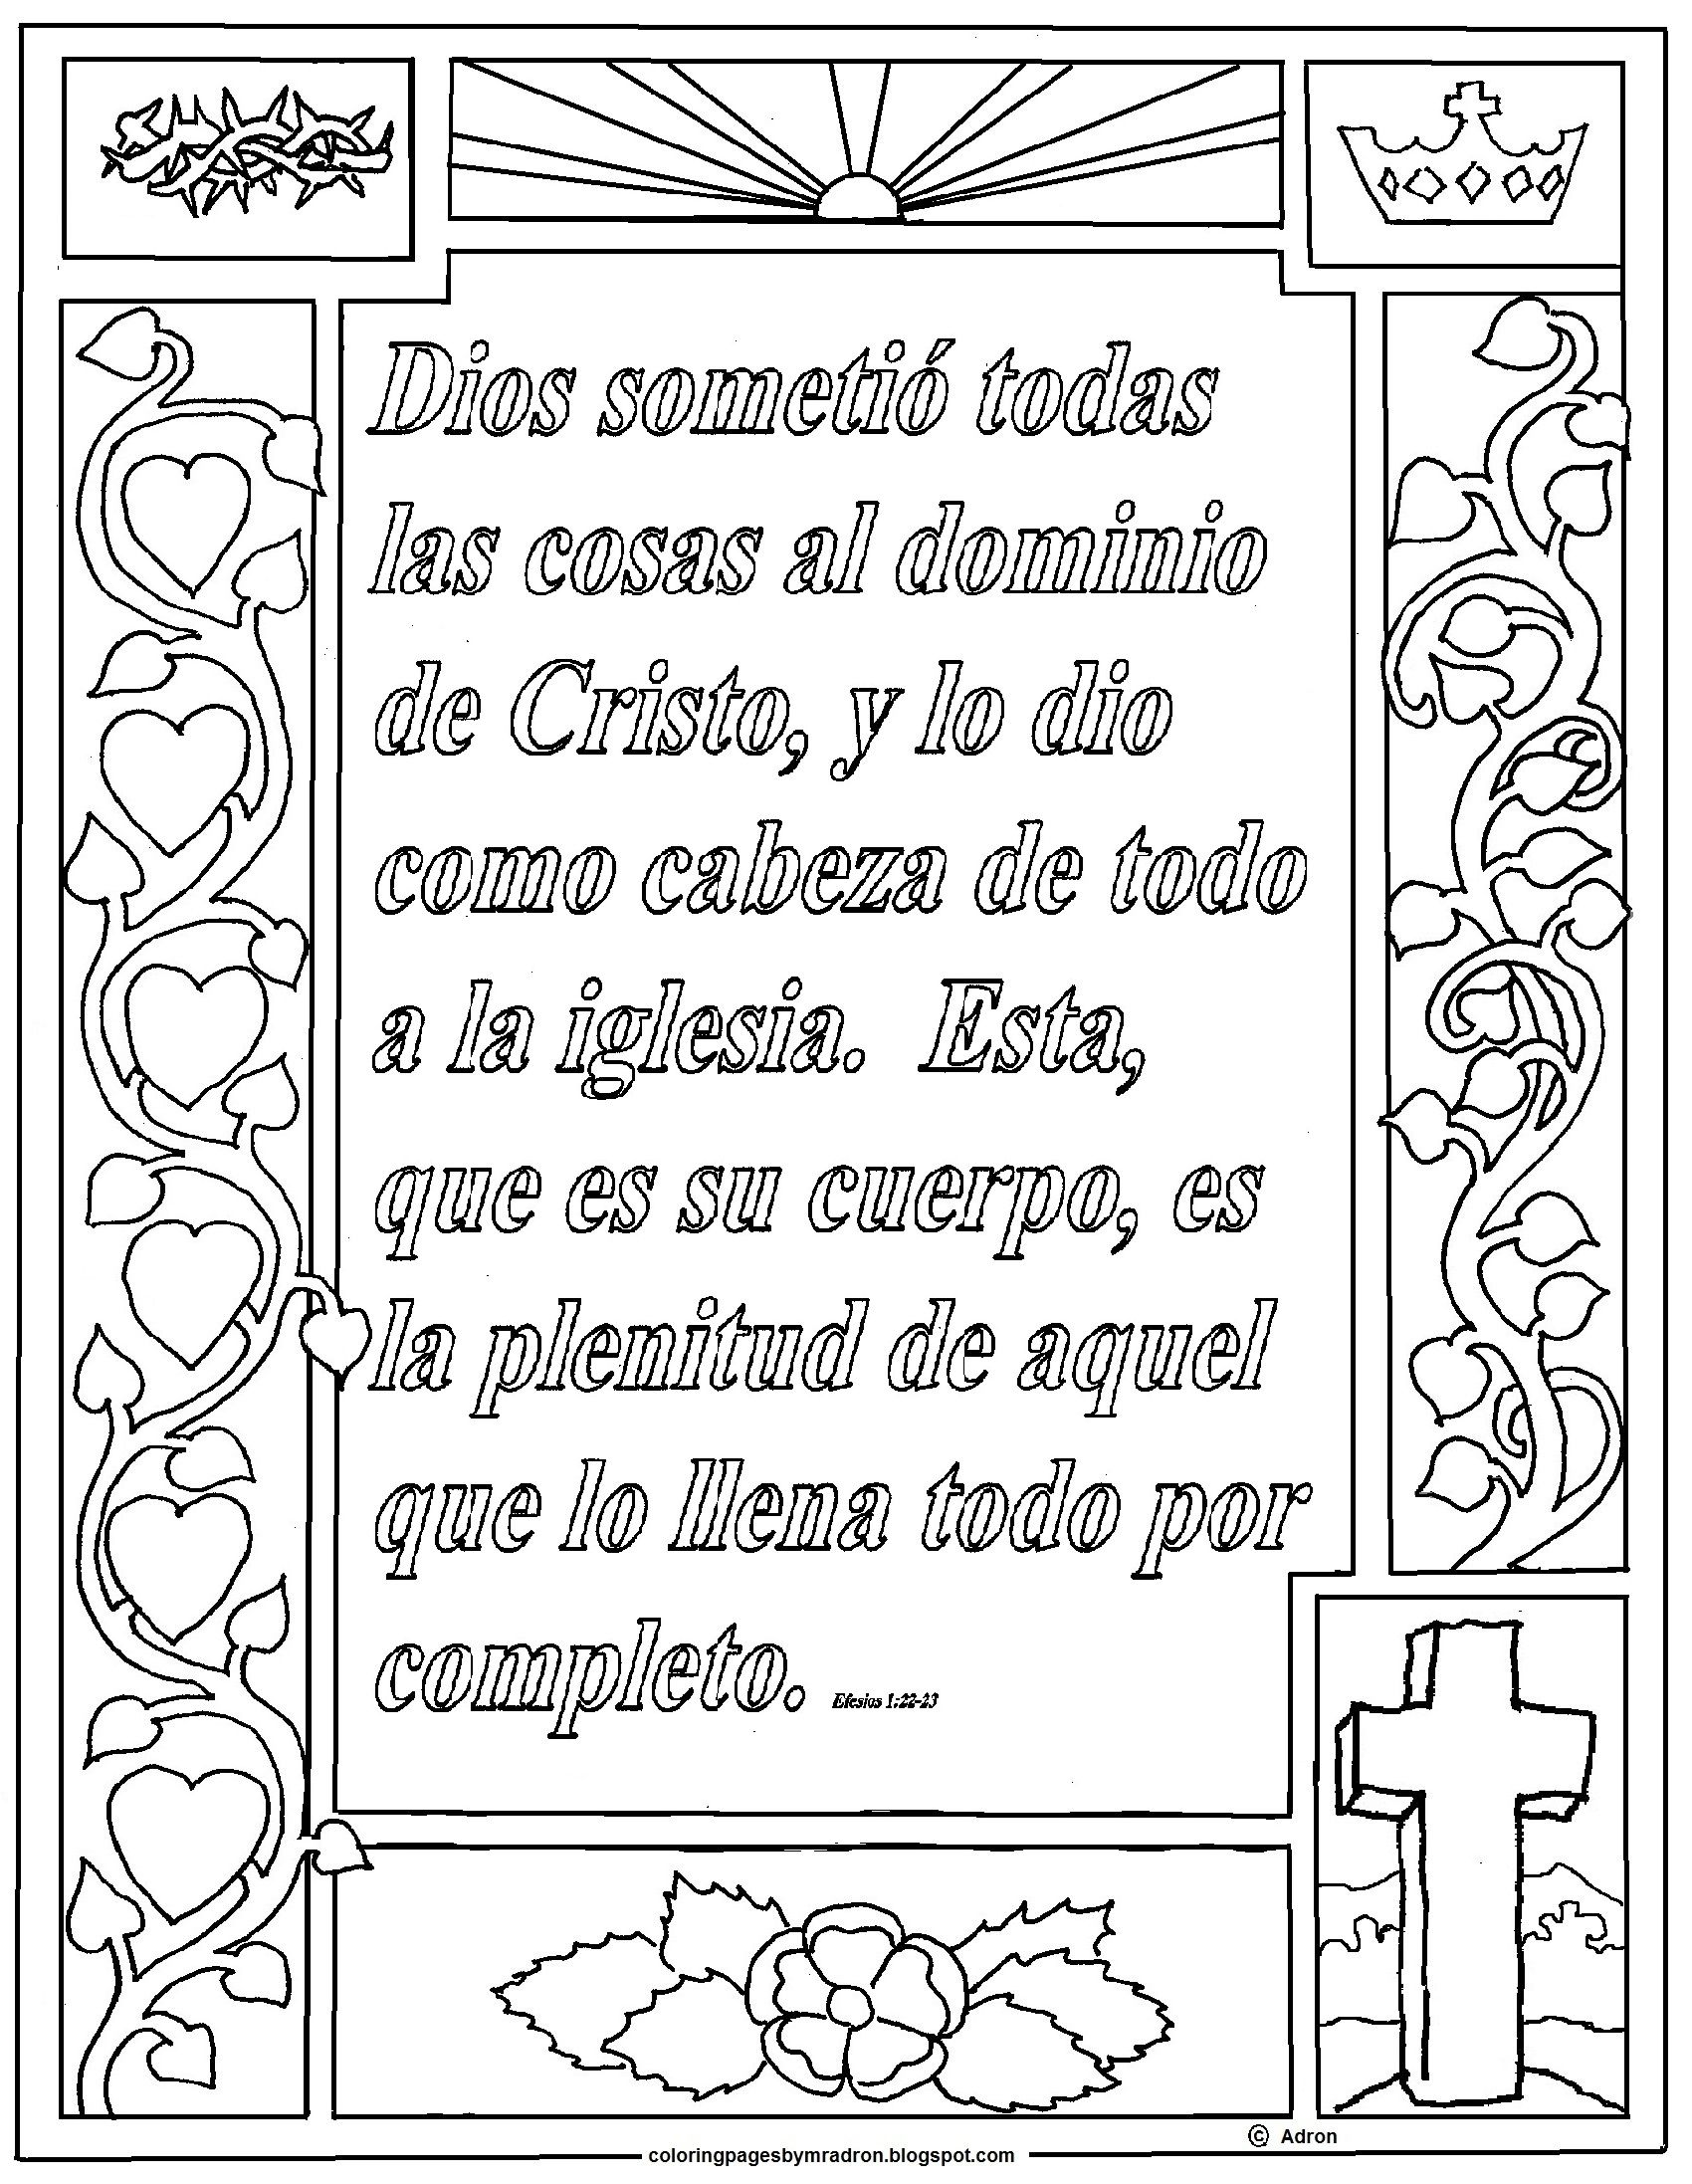 Print And Color Page For Ephesians 1 22 23 In Spanish Efesios 1